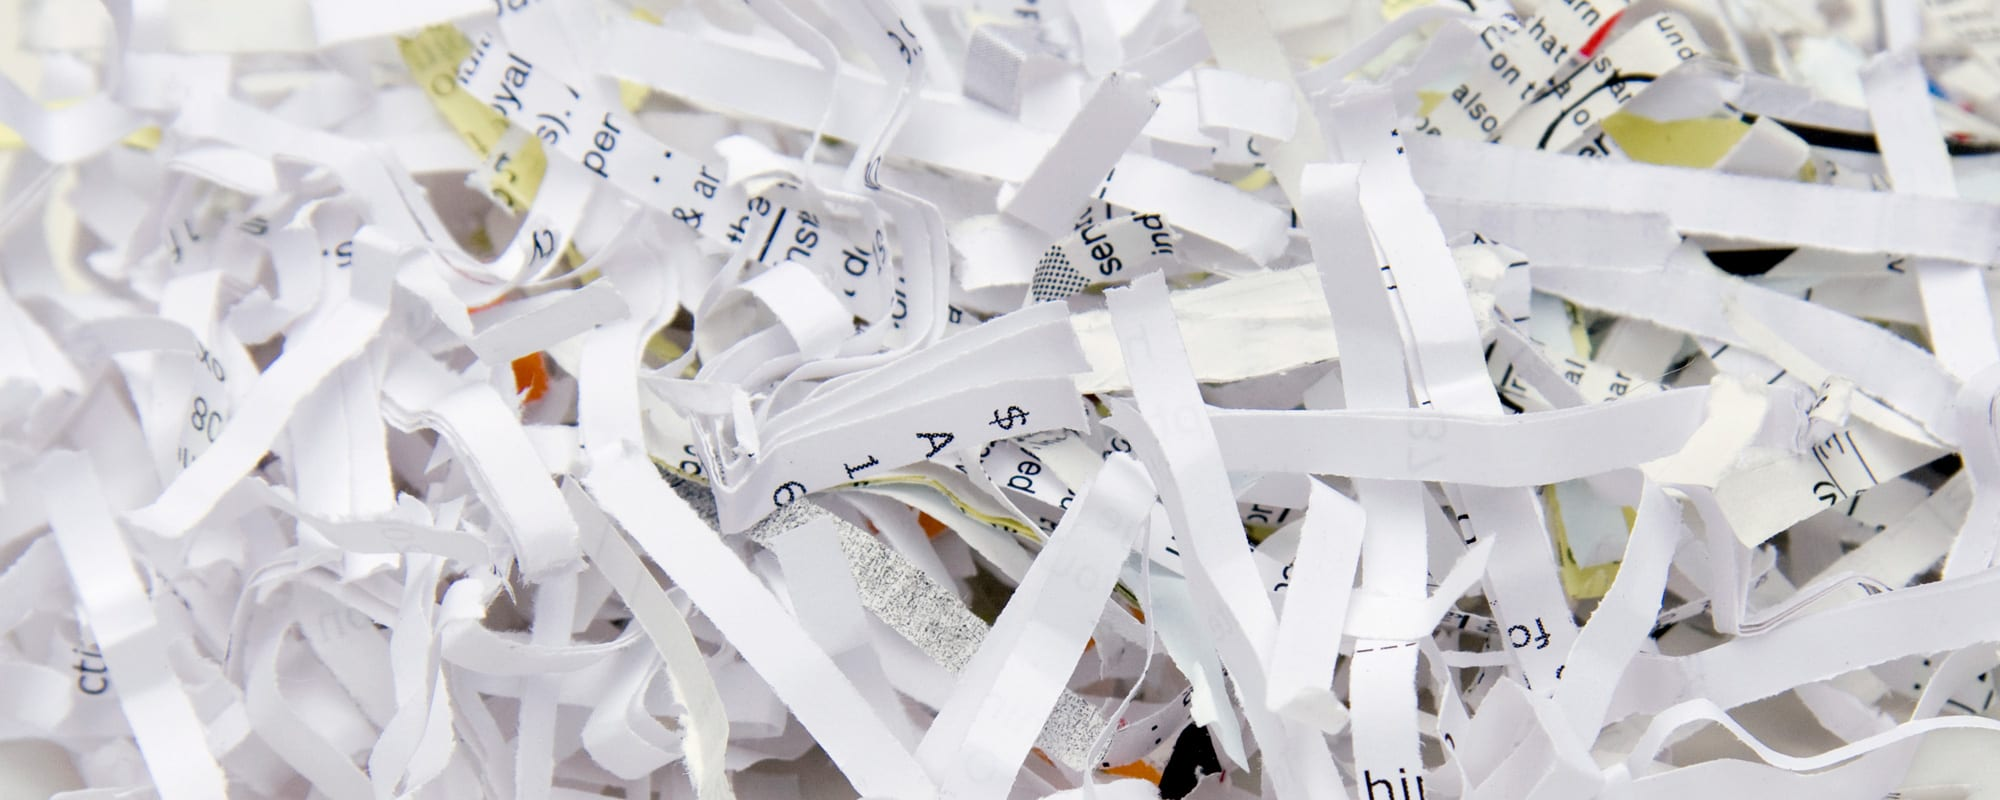 Paper is shredded to show the up coming shred day